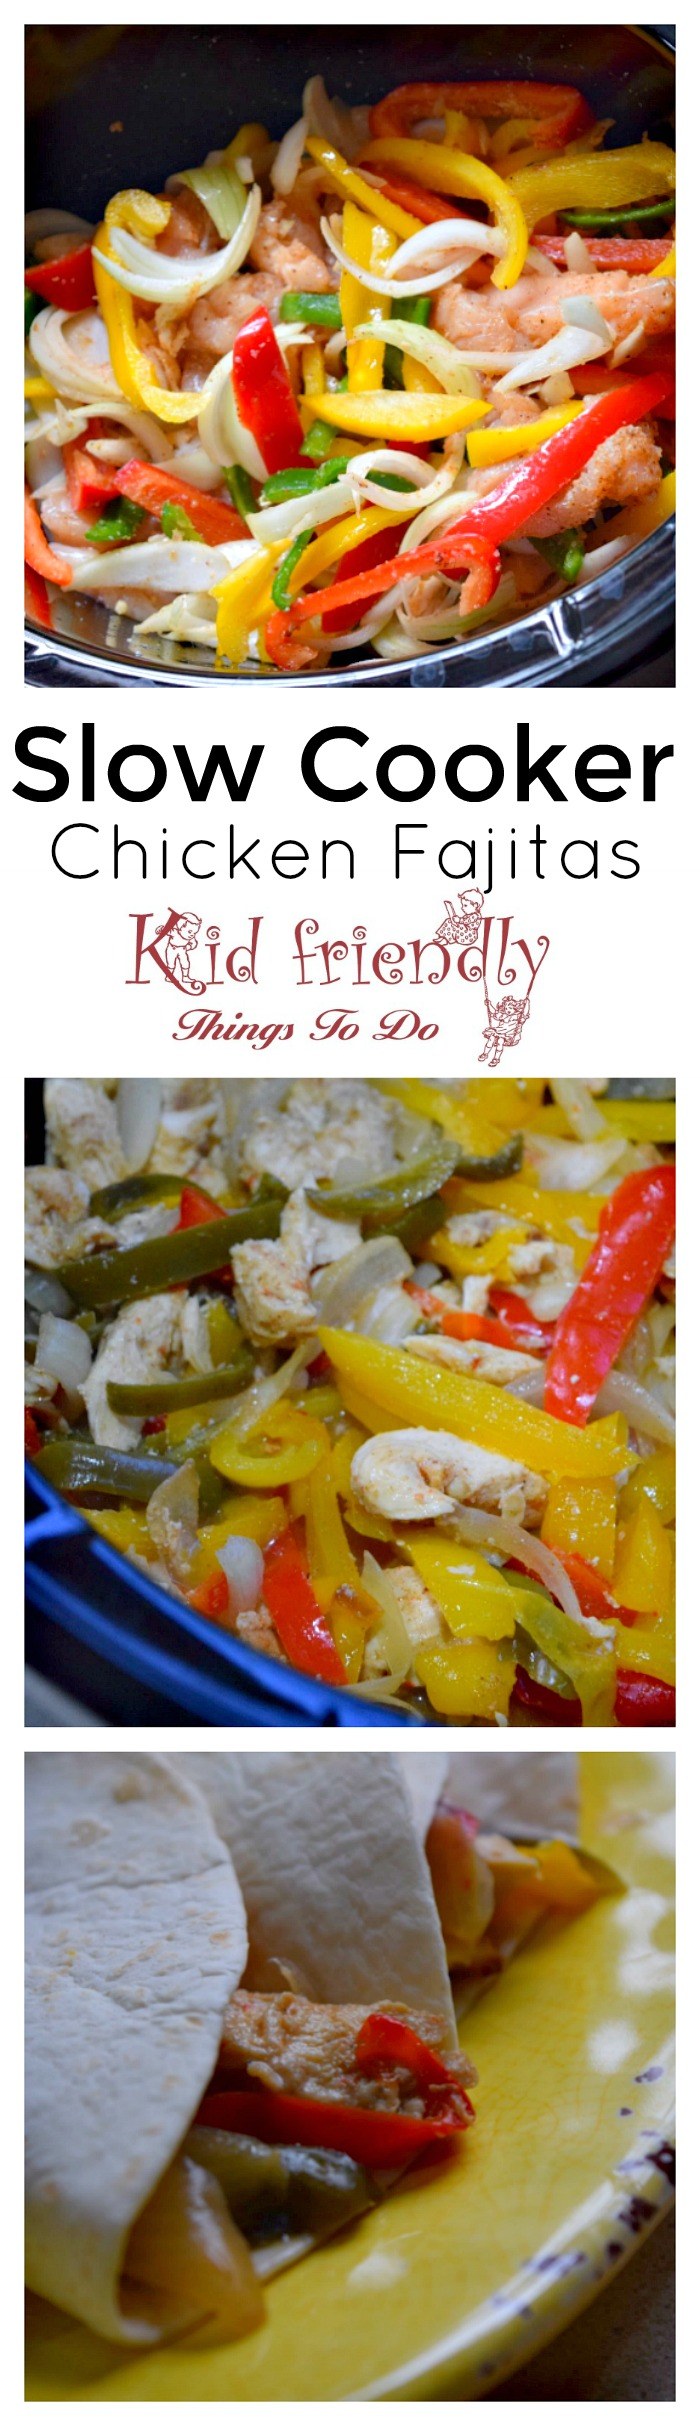 Busy night Easy and Delicious Slow Cooker Chicken Fajitas Recipe - www.kidfriendlythingstodo.com